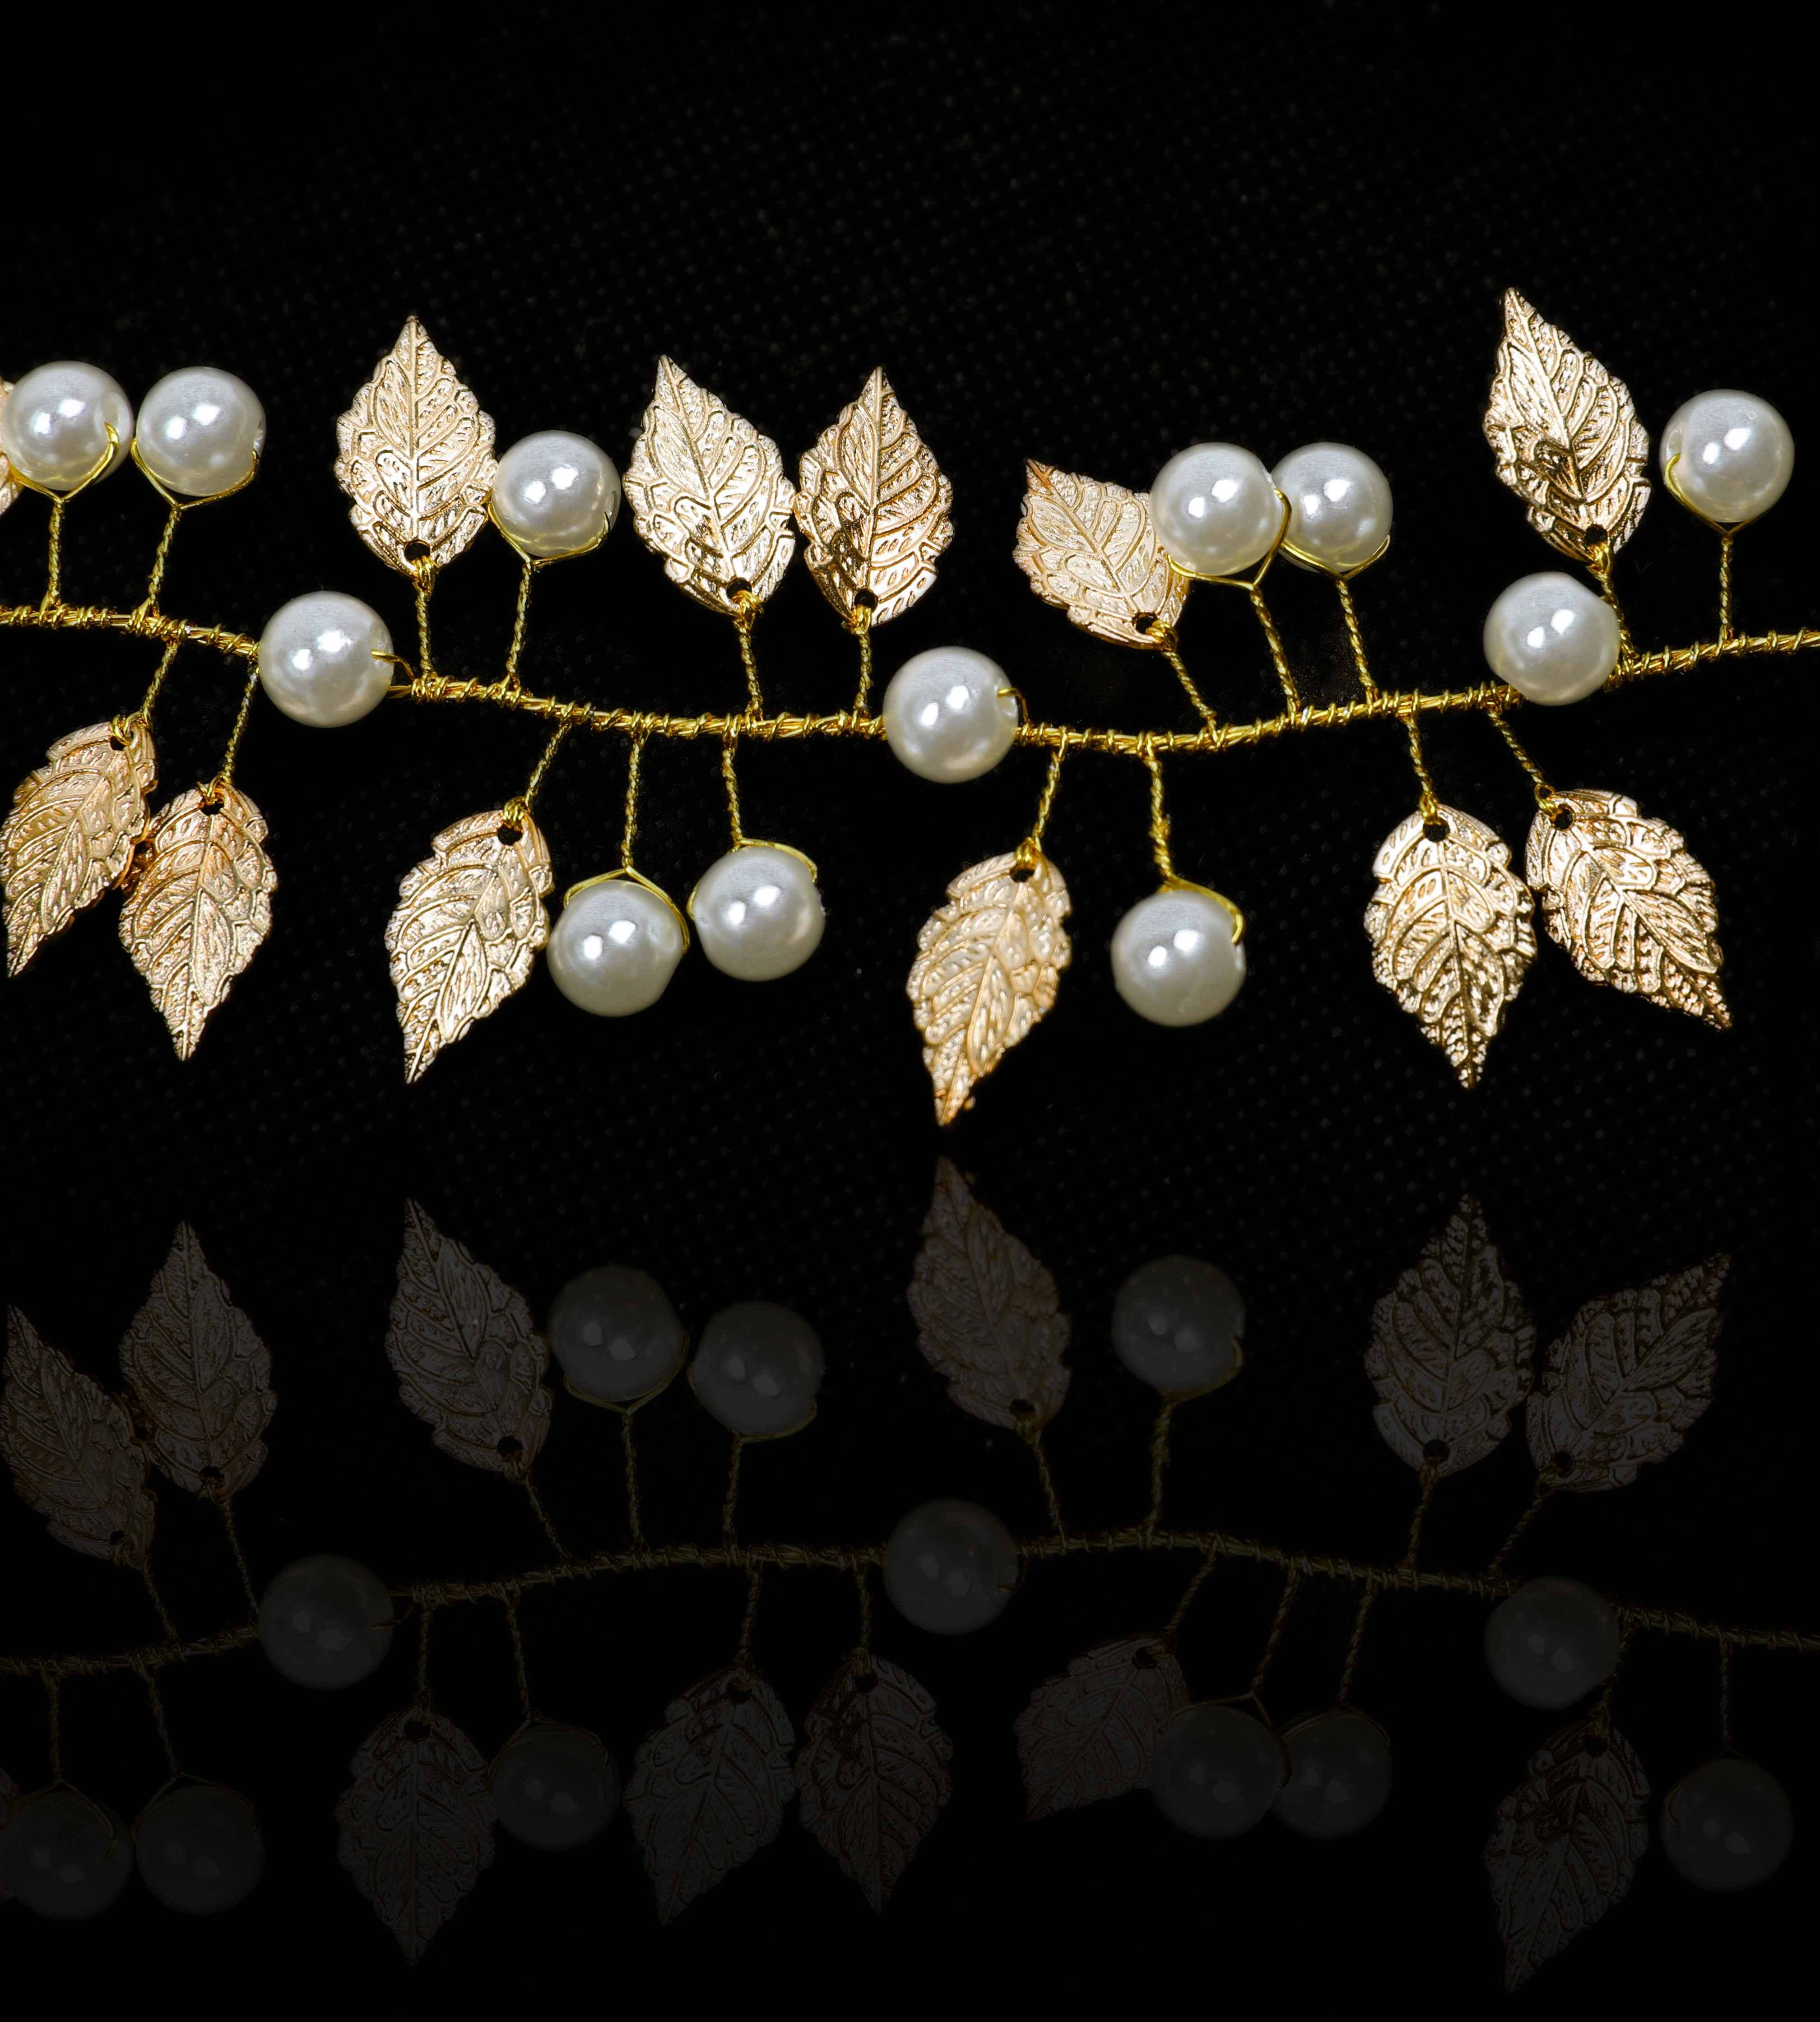 Wedding Hair Vine Headband Gold Leaves Leaf Hair Band Boho Flower Bridal Hair Accessories for Bride and Bridesmaid